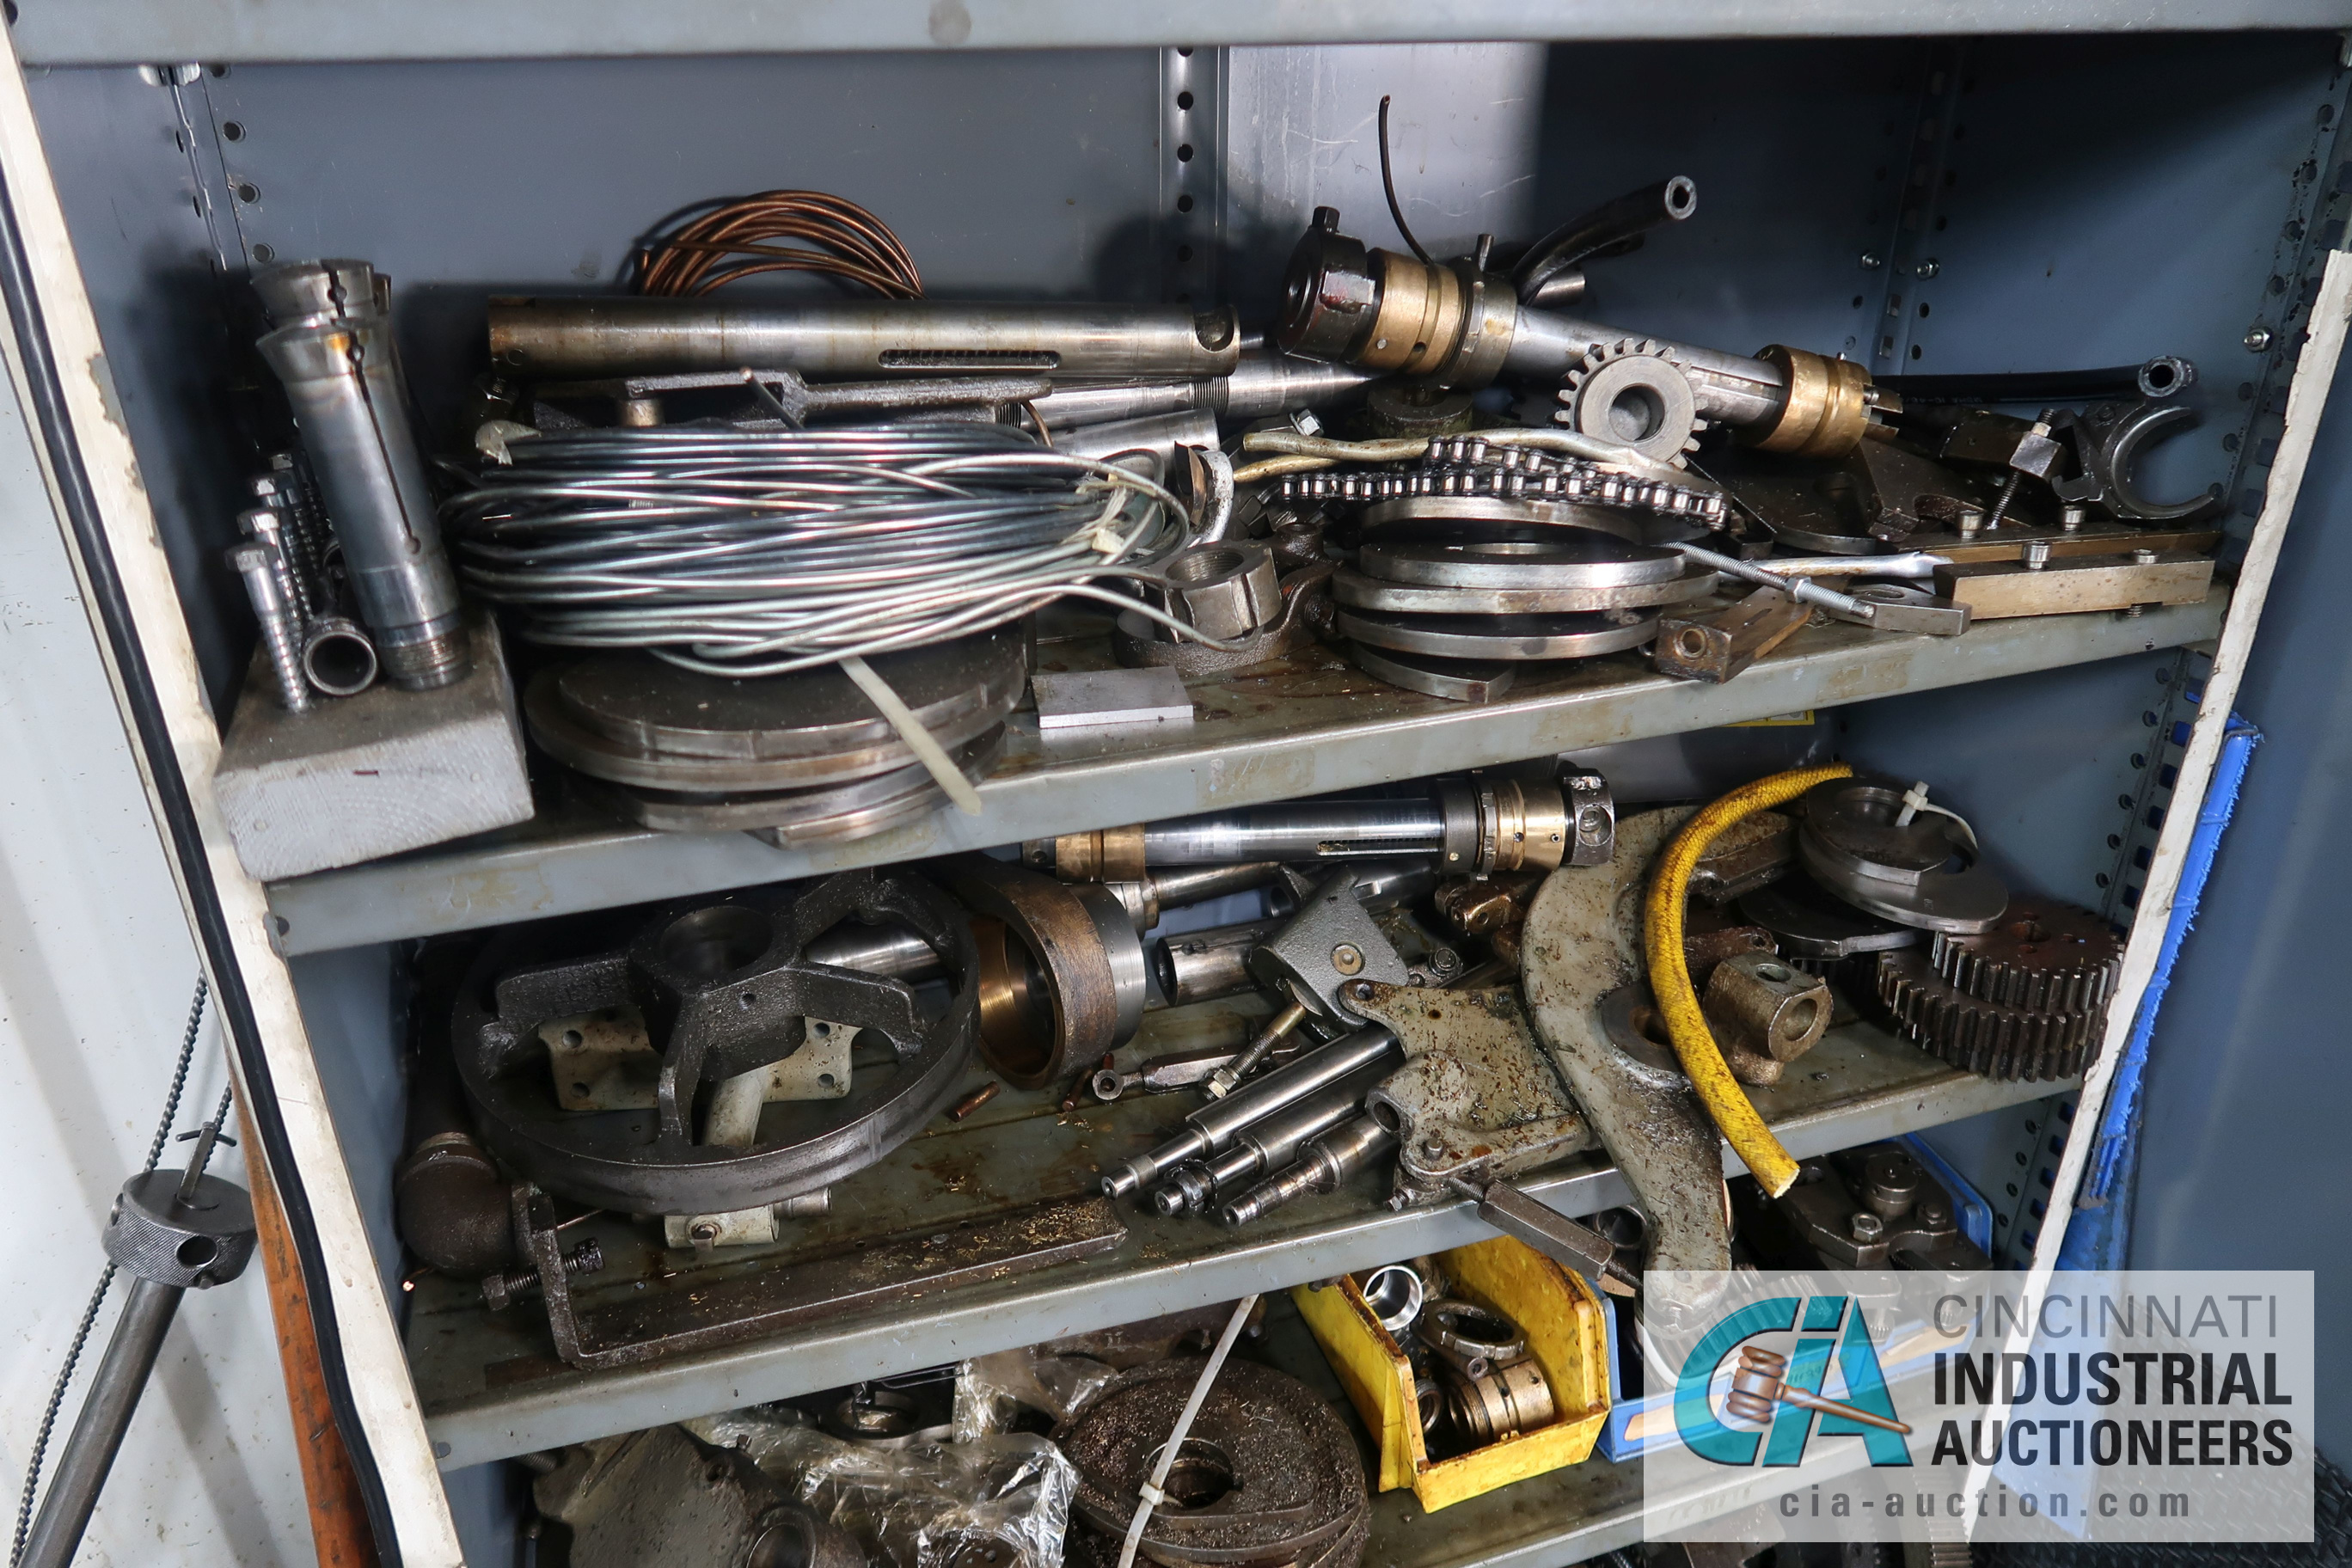 (LOT) LARGE ASSORTMENT MISCELLANEOUS DAVENPORT TOOLING, ATTACHMENTS, GEARS, CAMS AND OTHER RELATED - Image 14 of 21